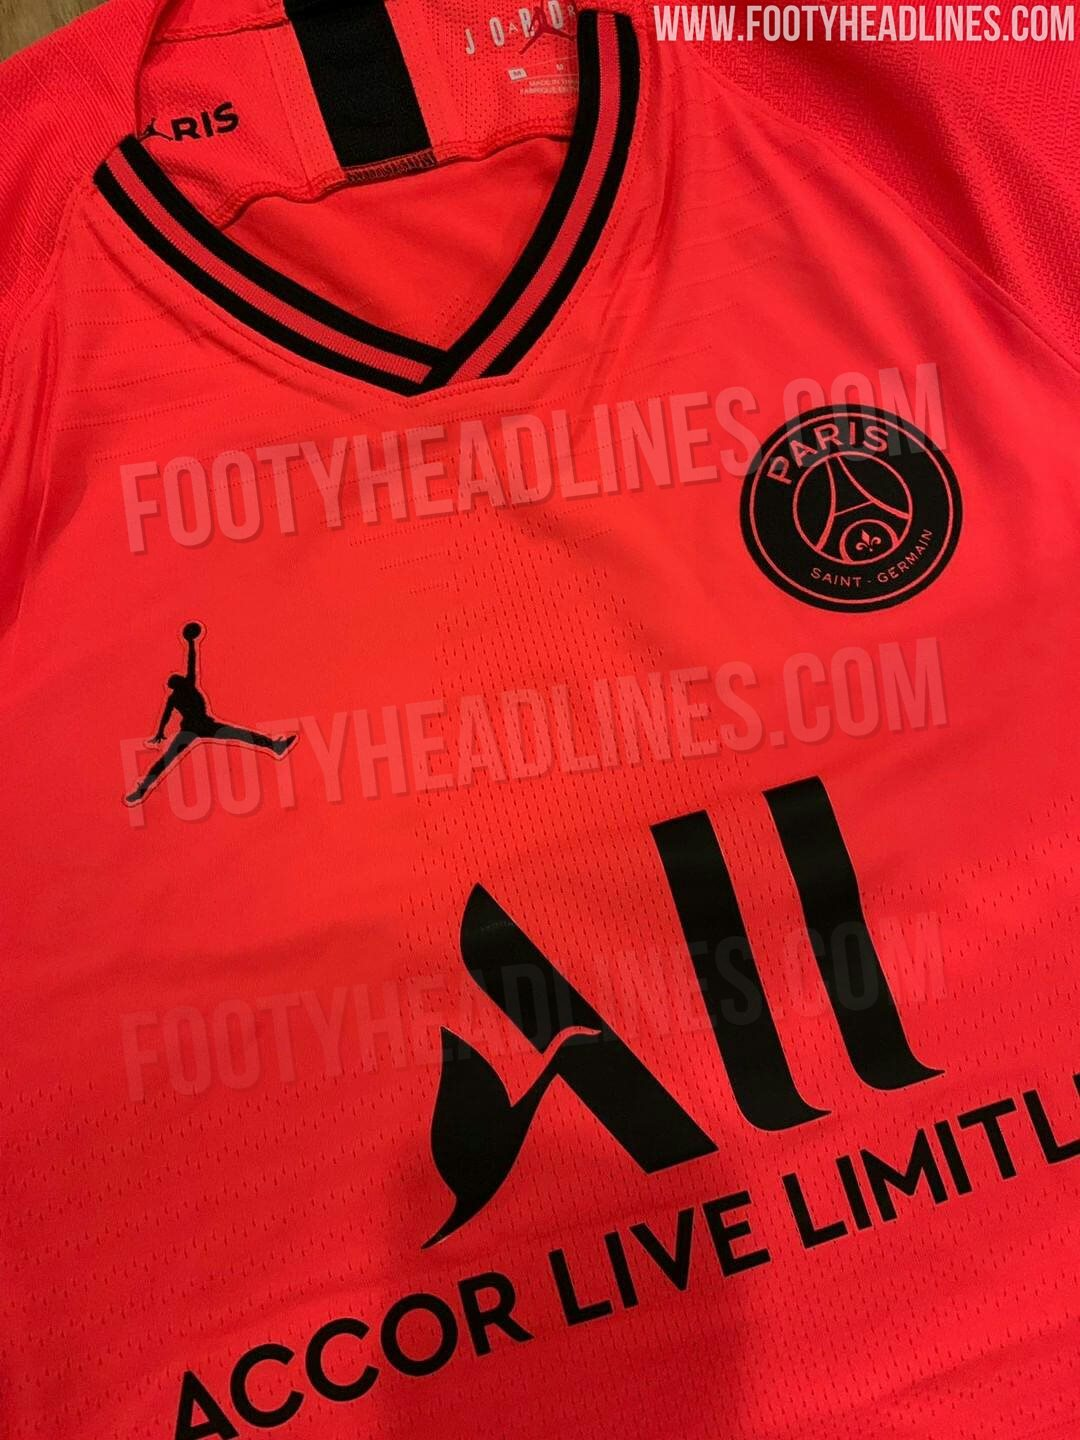 on sale 4029a 09738 📸 PSG's new away kit is certainly eye-catching 😳